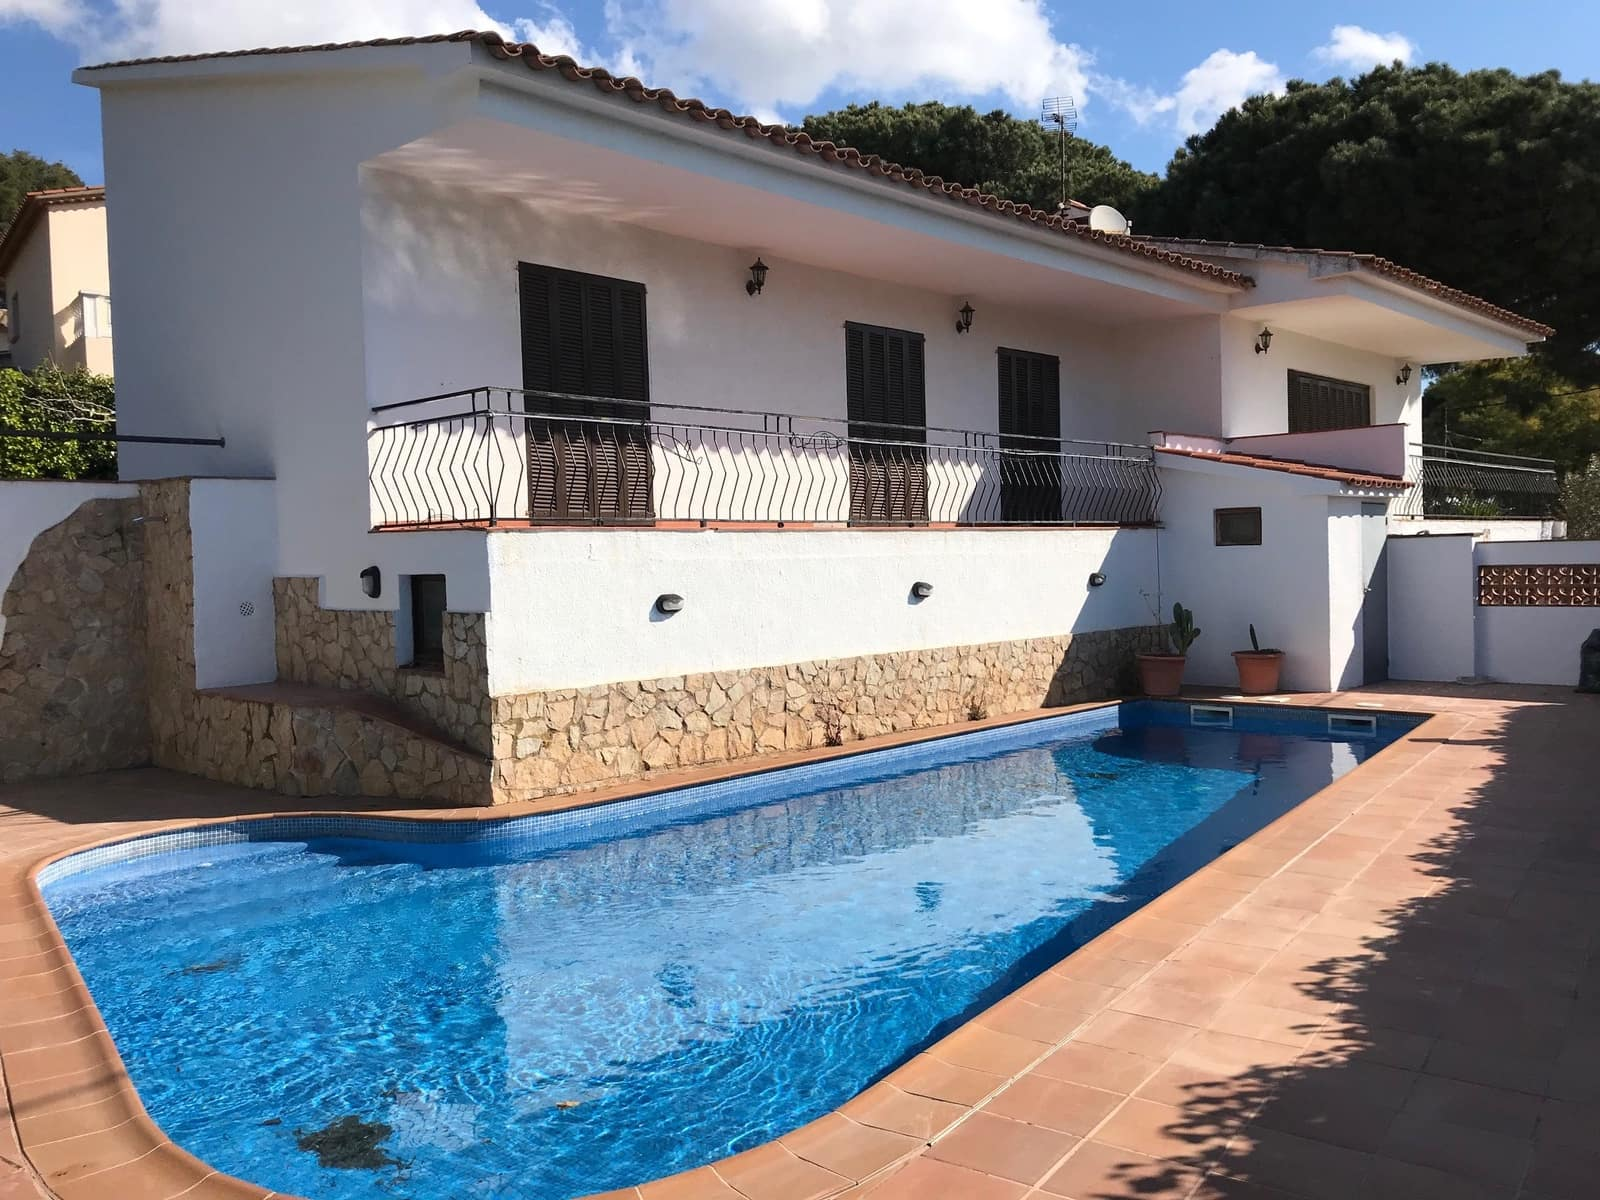 4 bedroom Villa for sale in S'Agaro with pool - € 475,000 (Ref: 4725580)